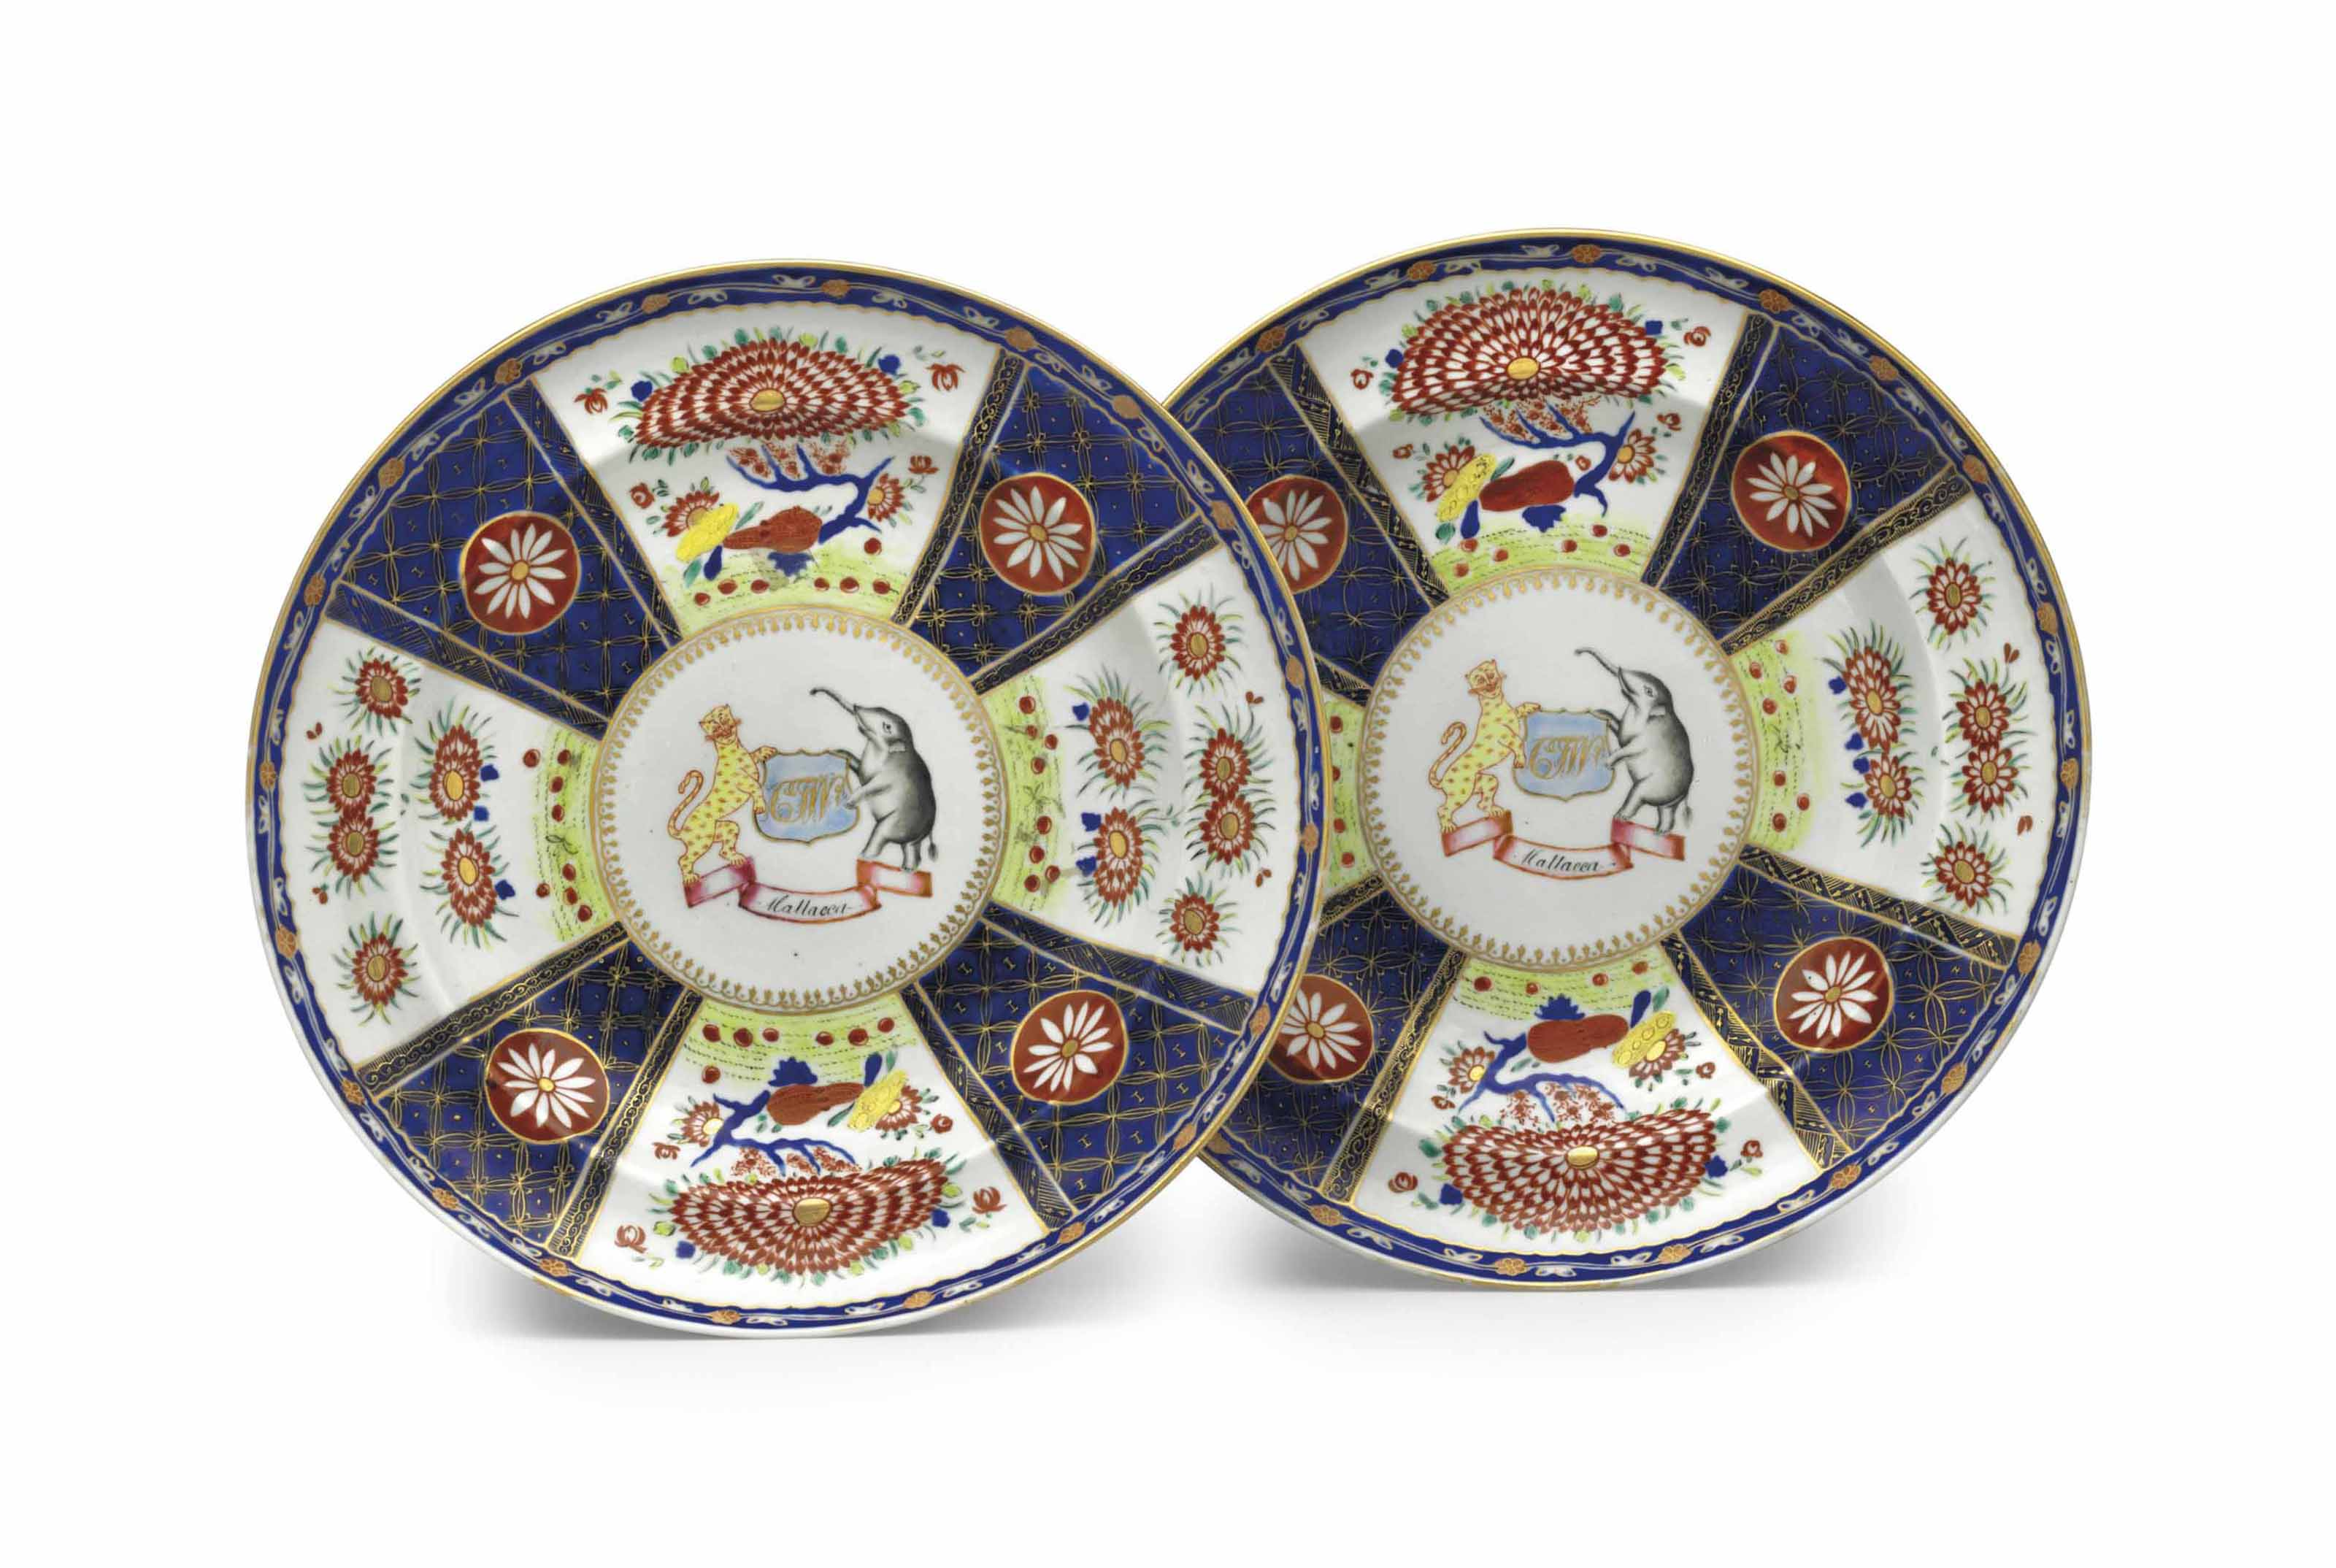 A PAIR OF ARMORIAL PLATES FROM